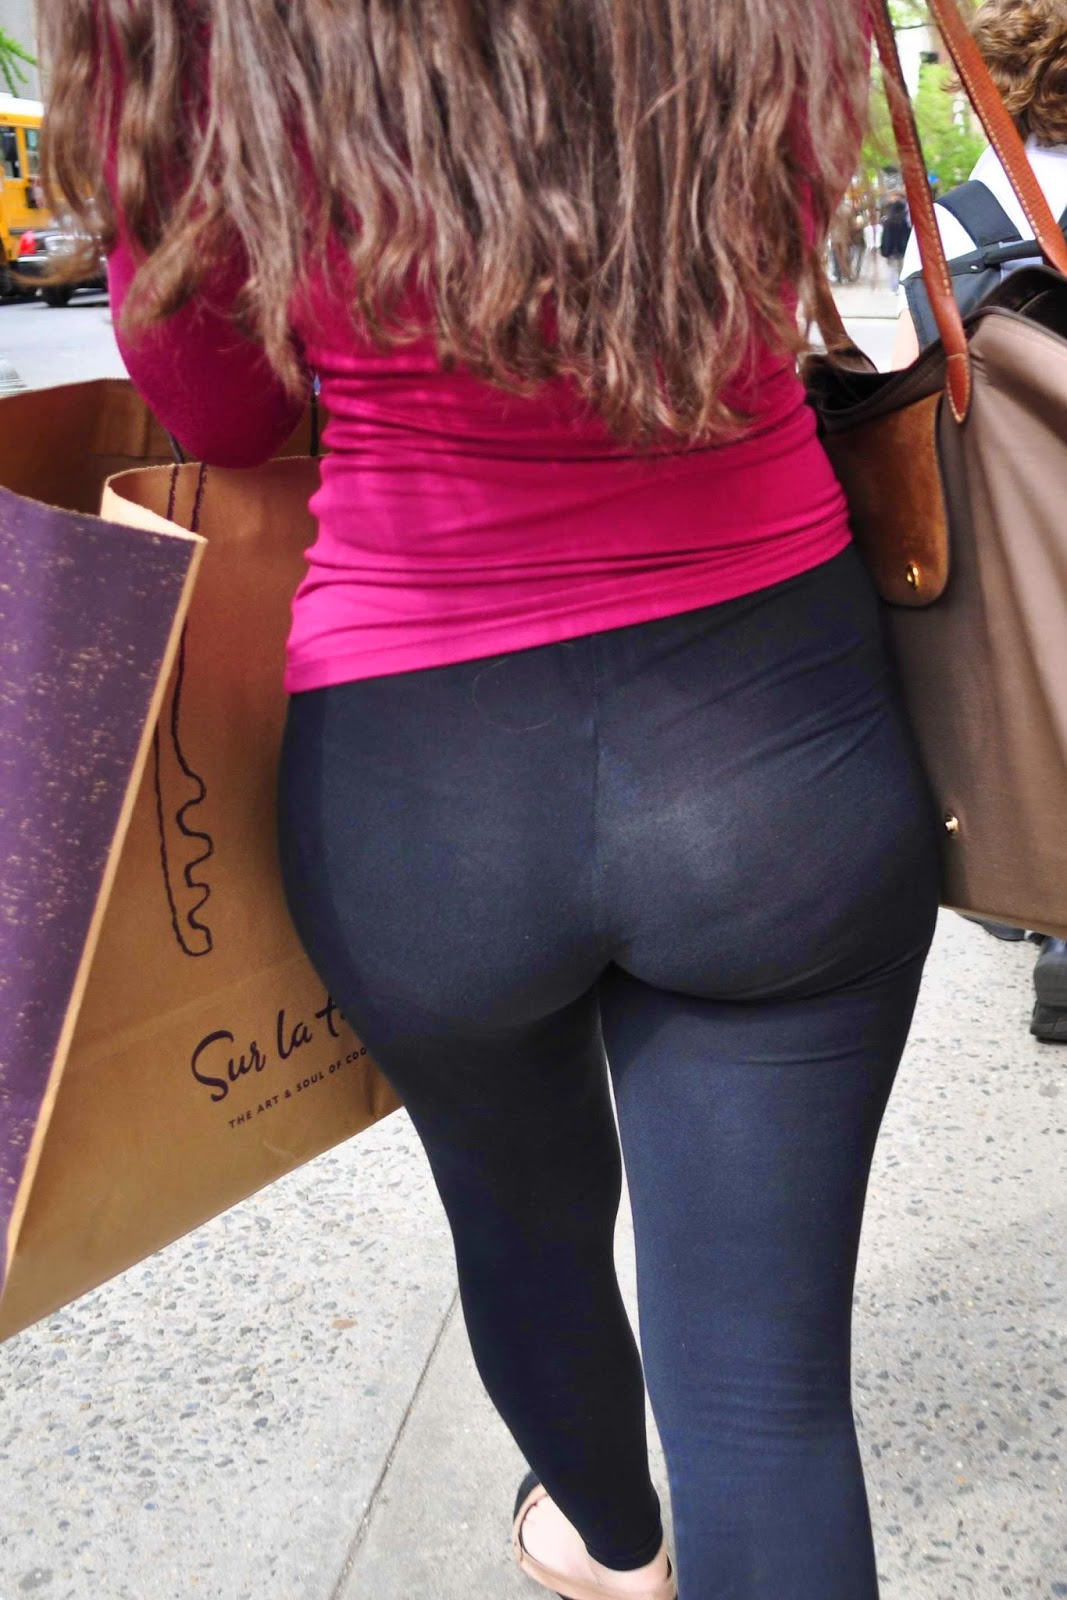 Hot girls in spandex leggings